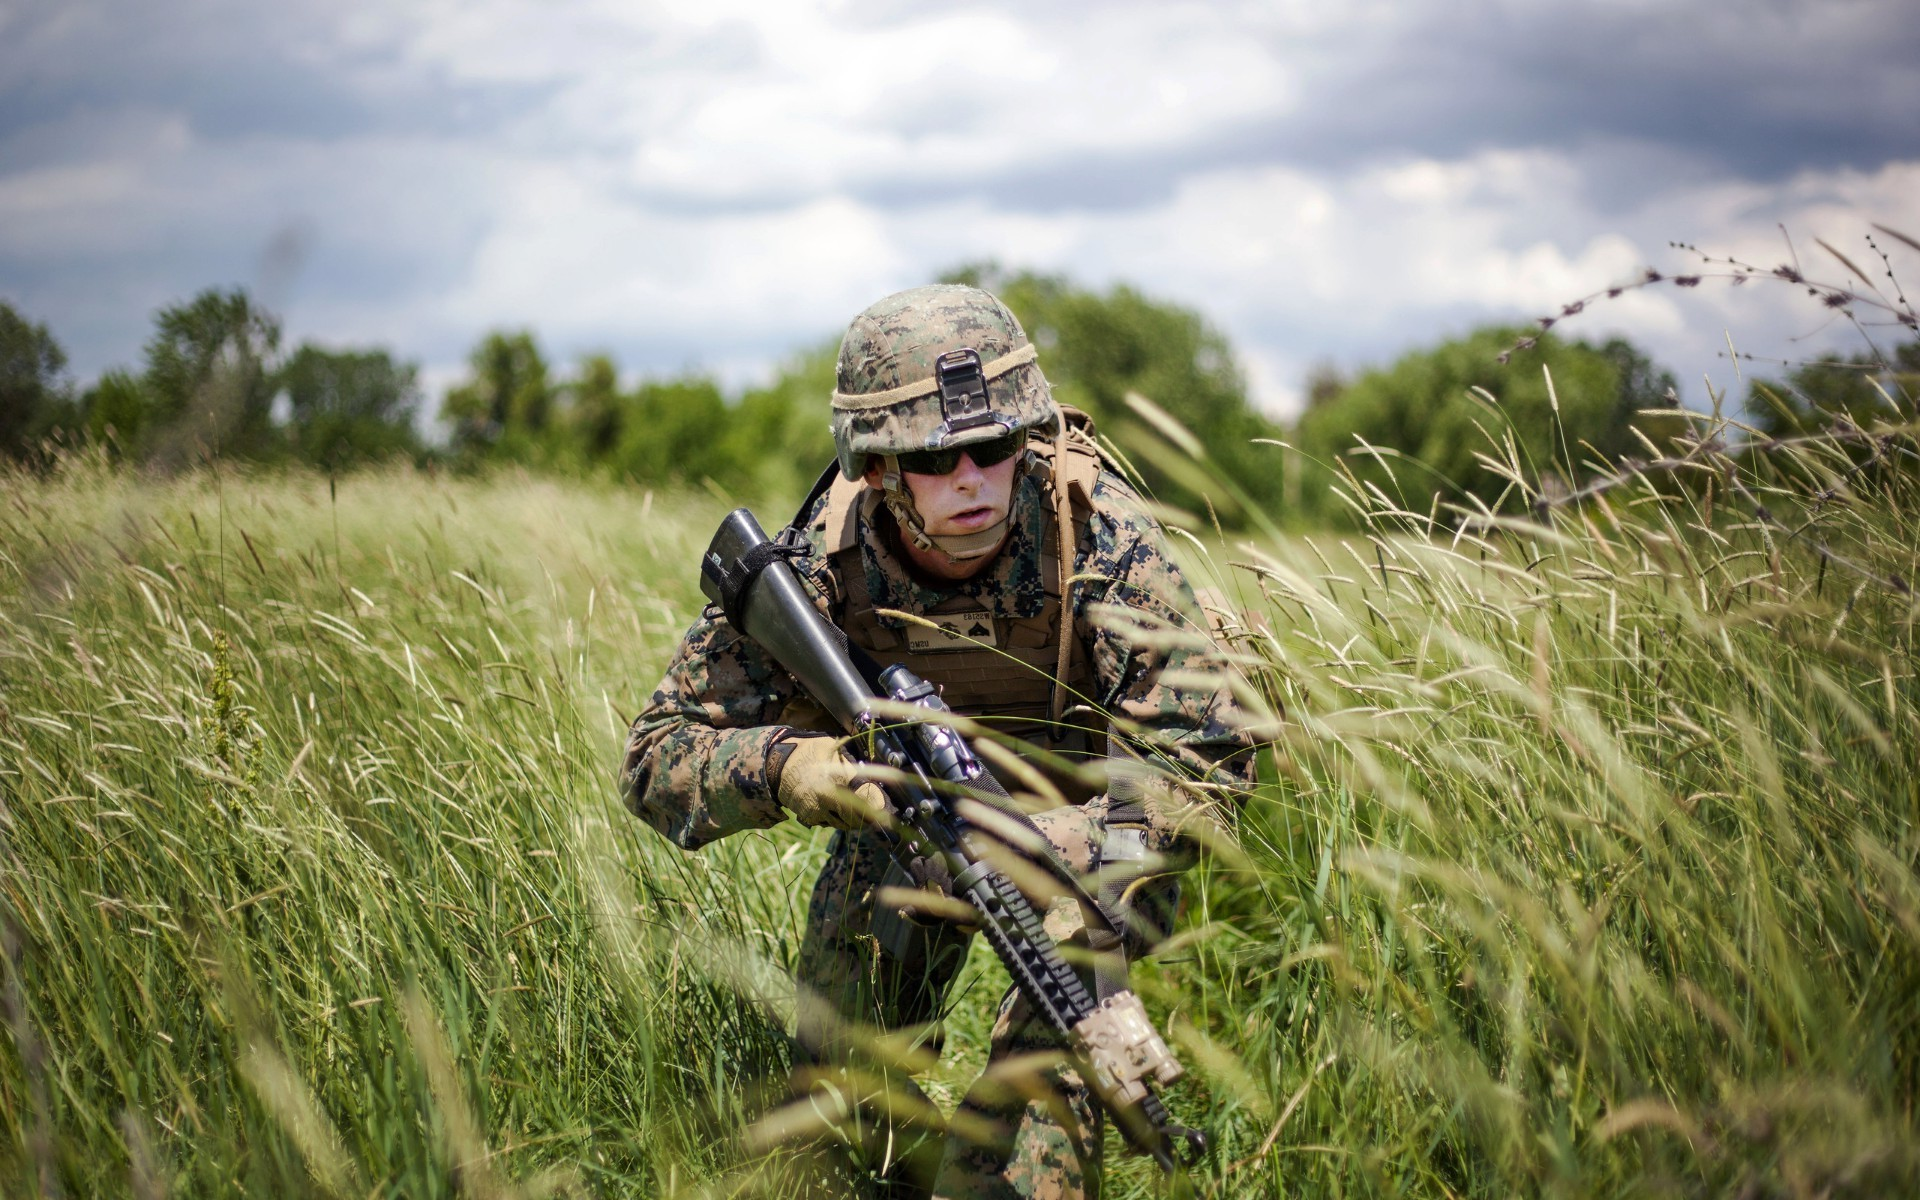 Wallpaper Android N Army: Soldier In Uniform Sneaking Through The Tall Grass In A